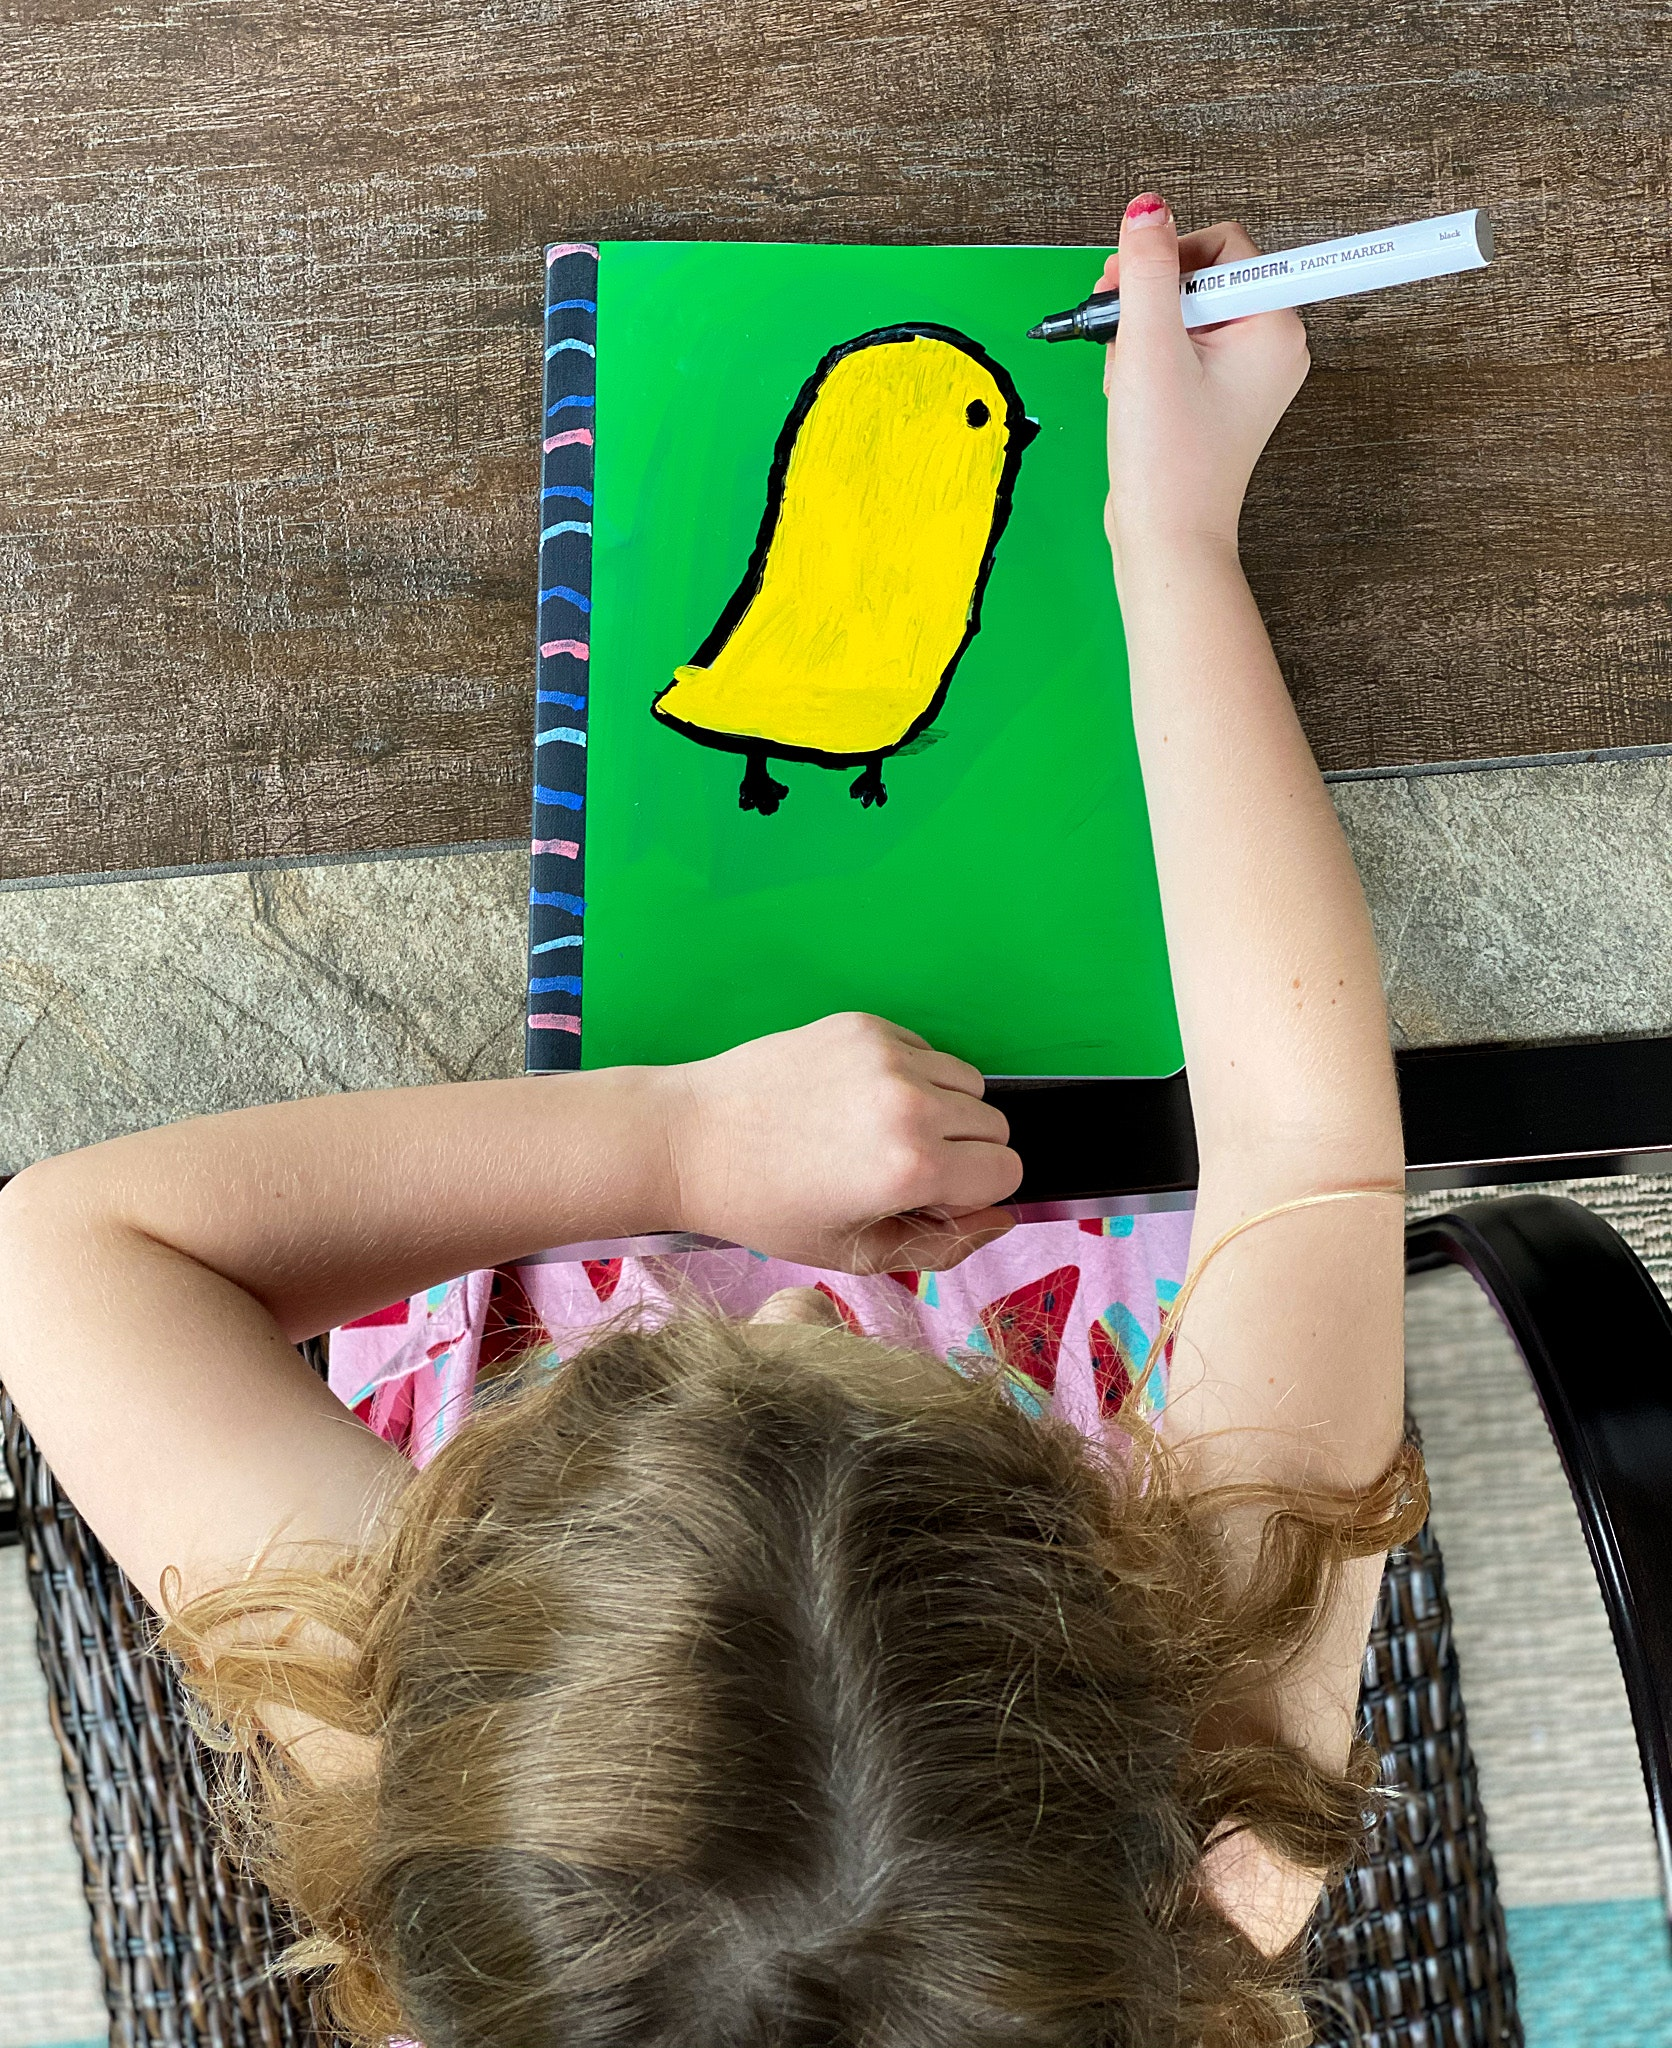 diy school supplies personalize with paint pens